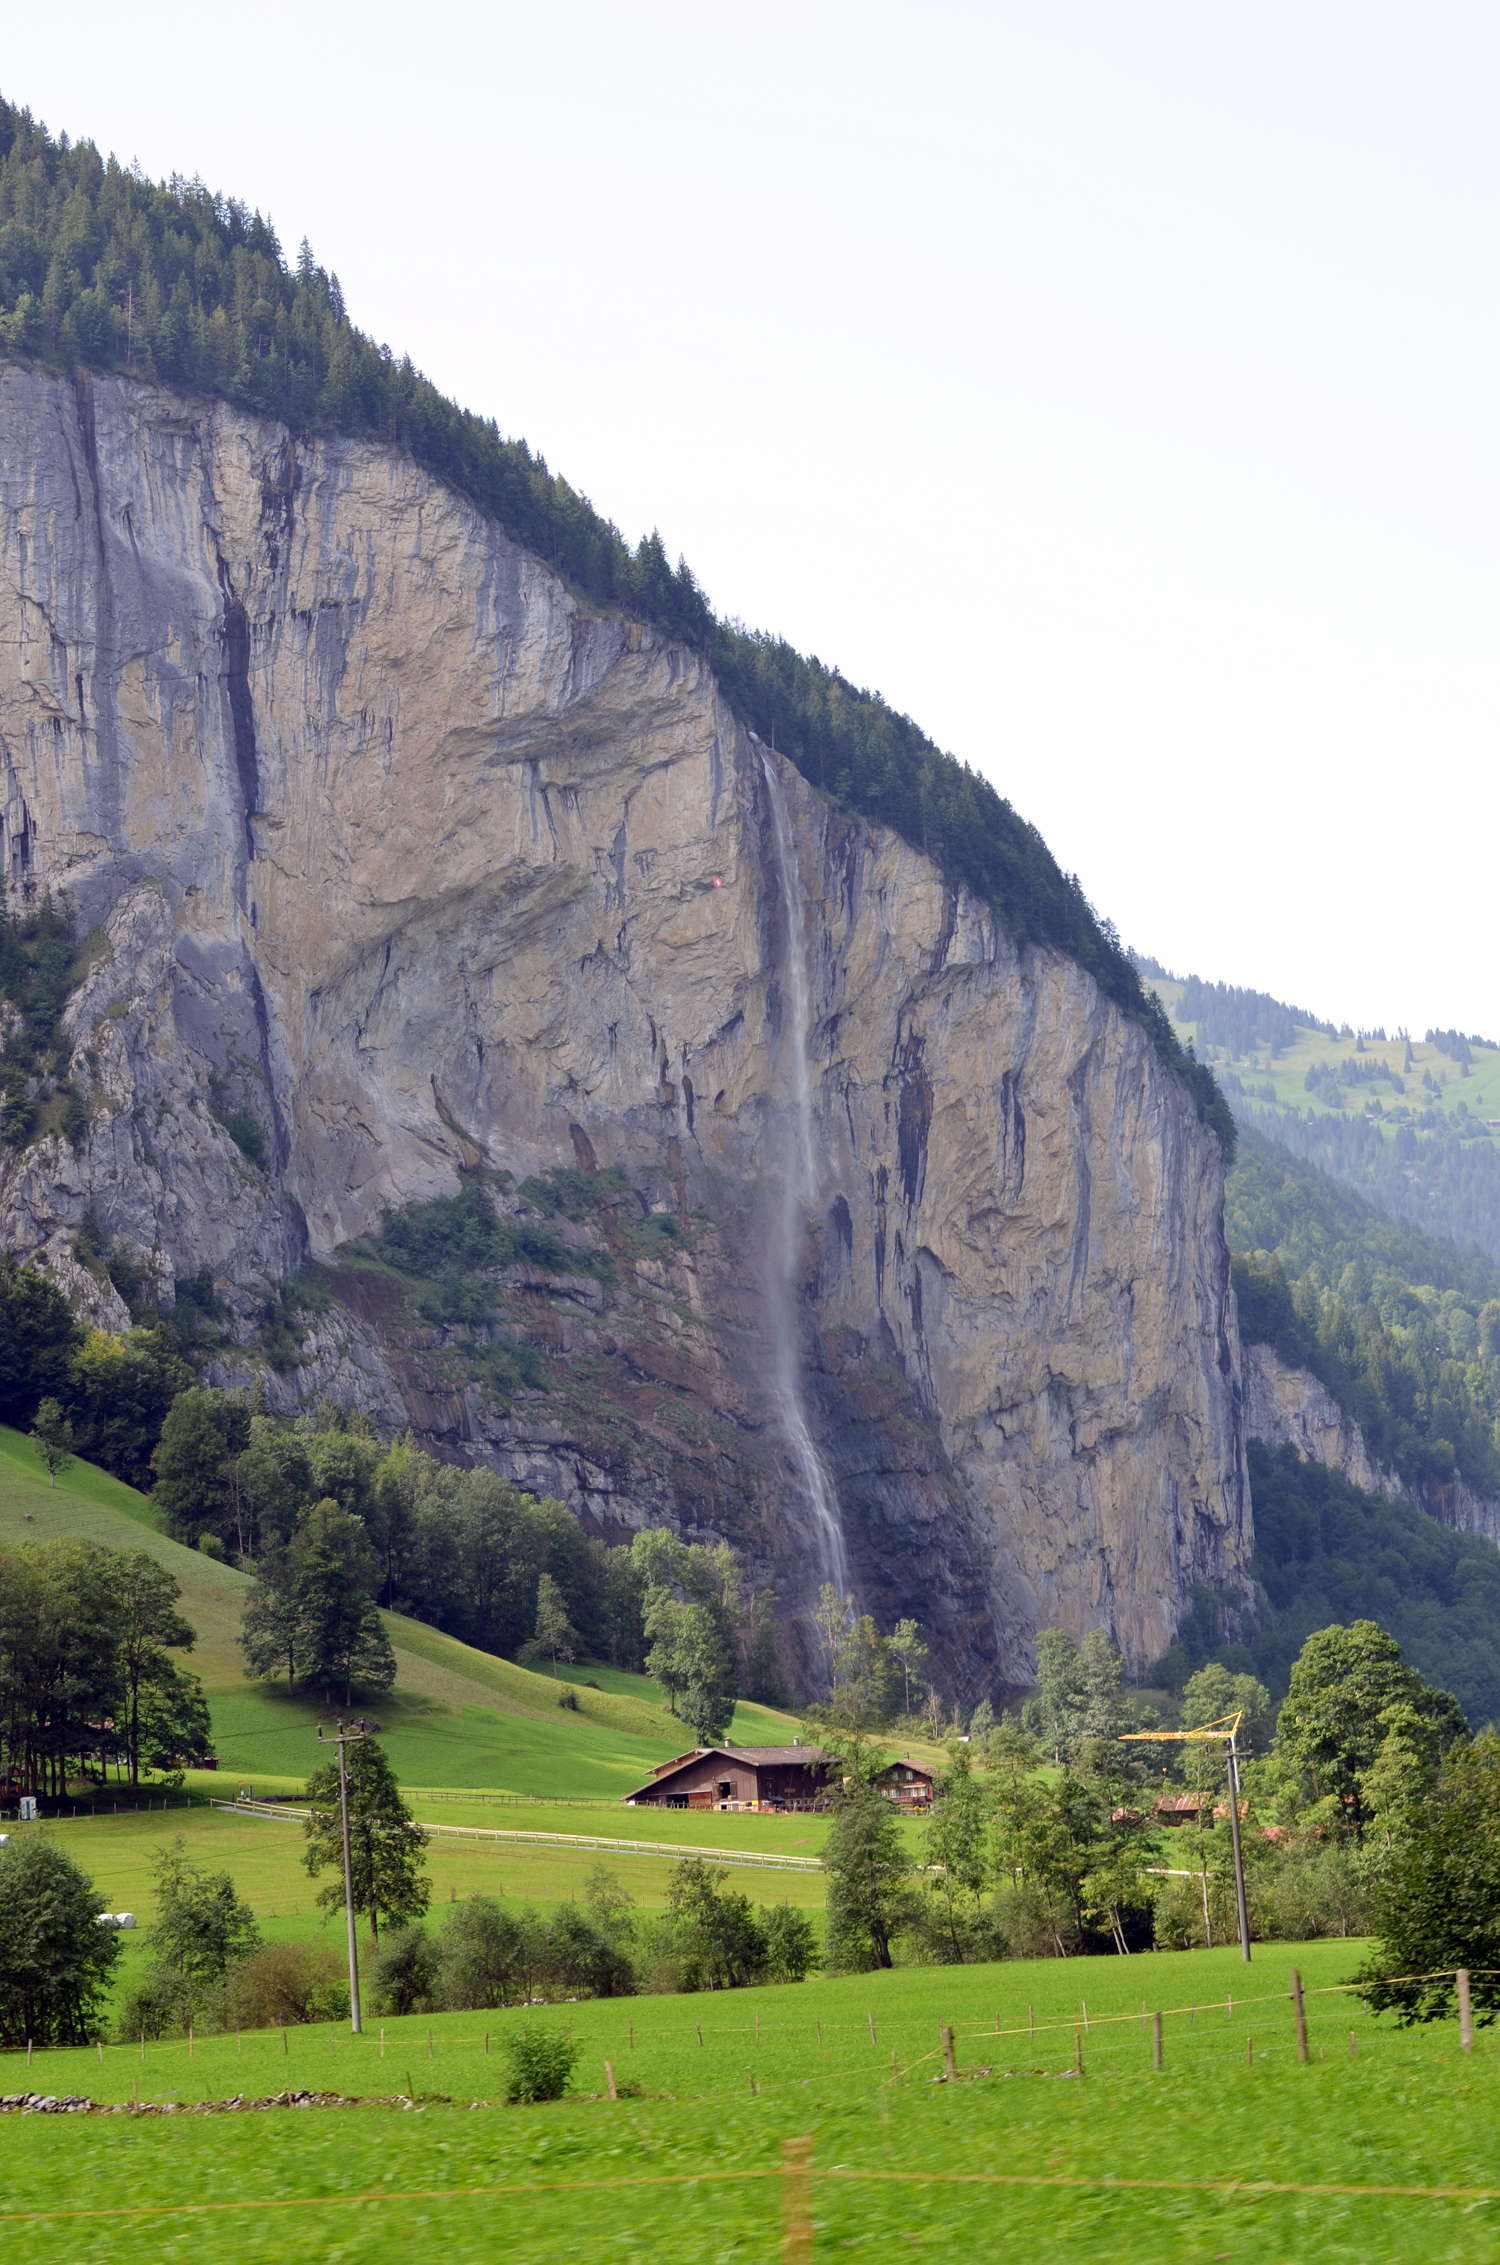 mercredie-blog-geneve-suisse-voyage-my-switzerland-grand-tour-roadtrip-europcar-accor-hotel-chutes-cascades-trummelbach-falls